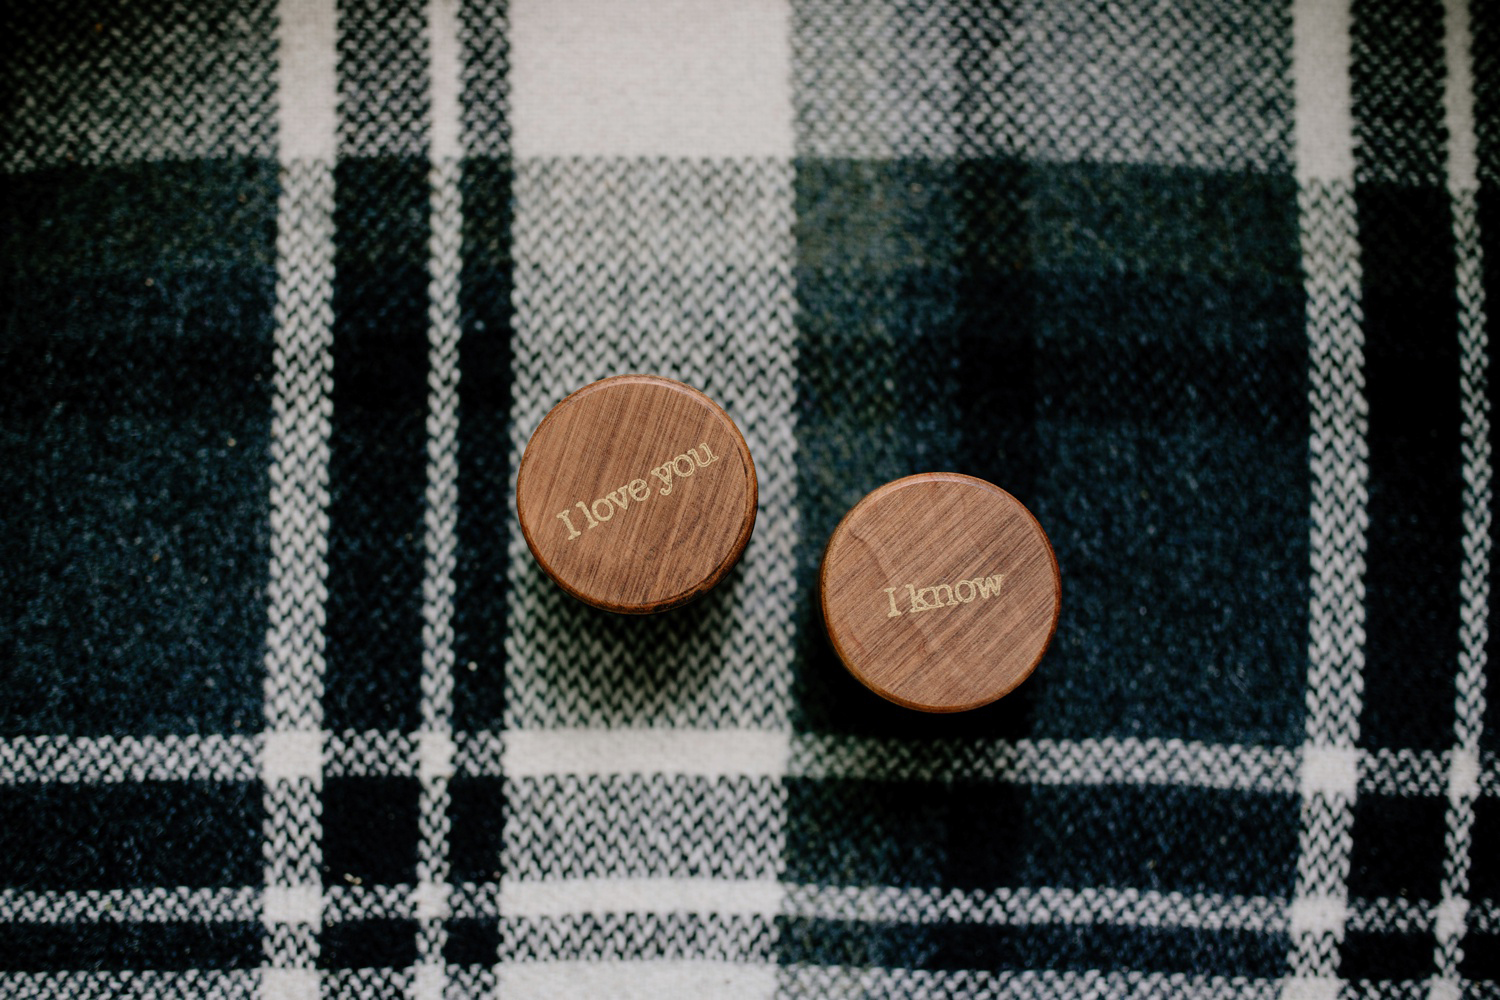 cute wooden ring boxes on plaid blanket